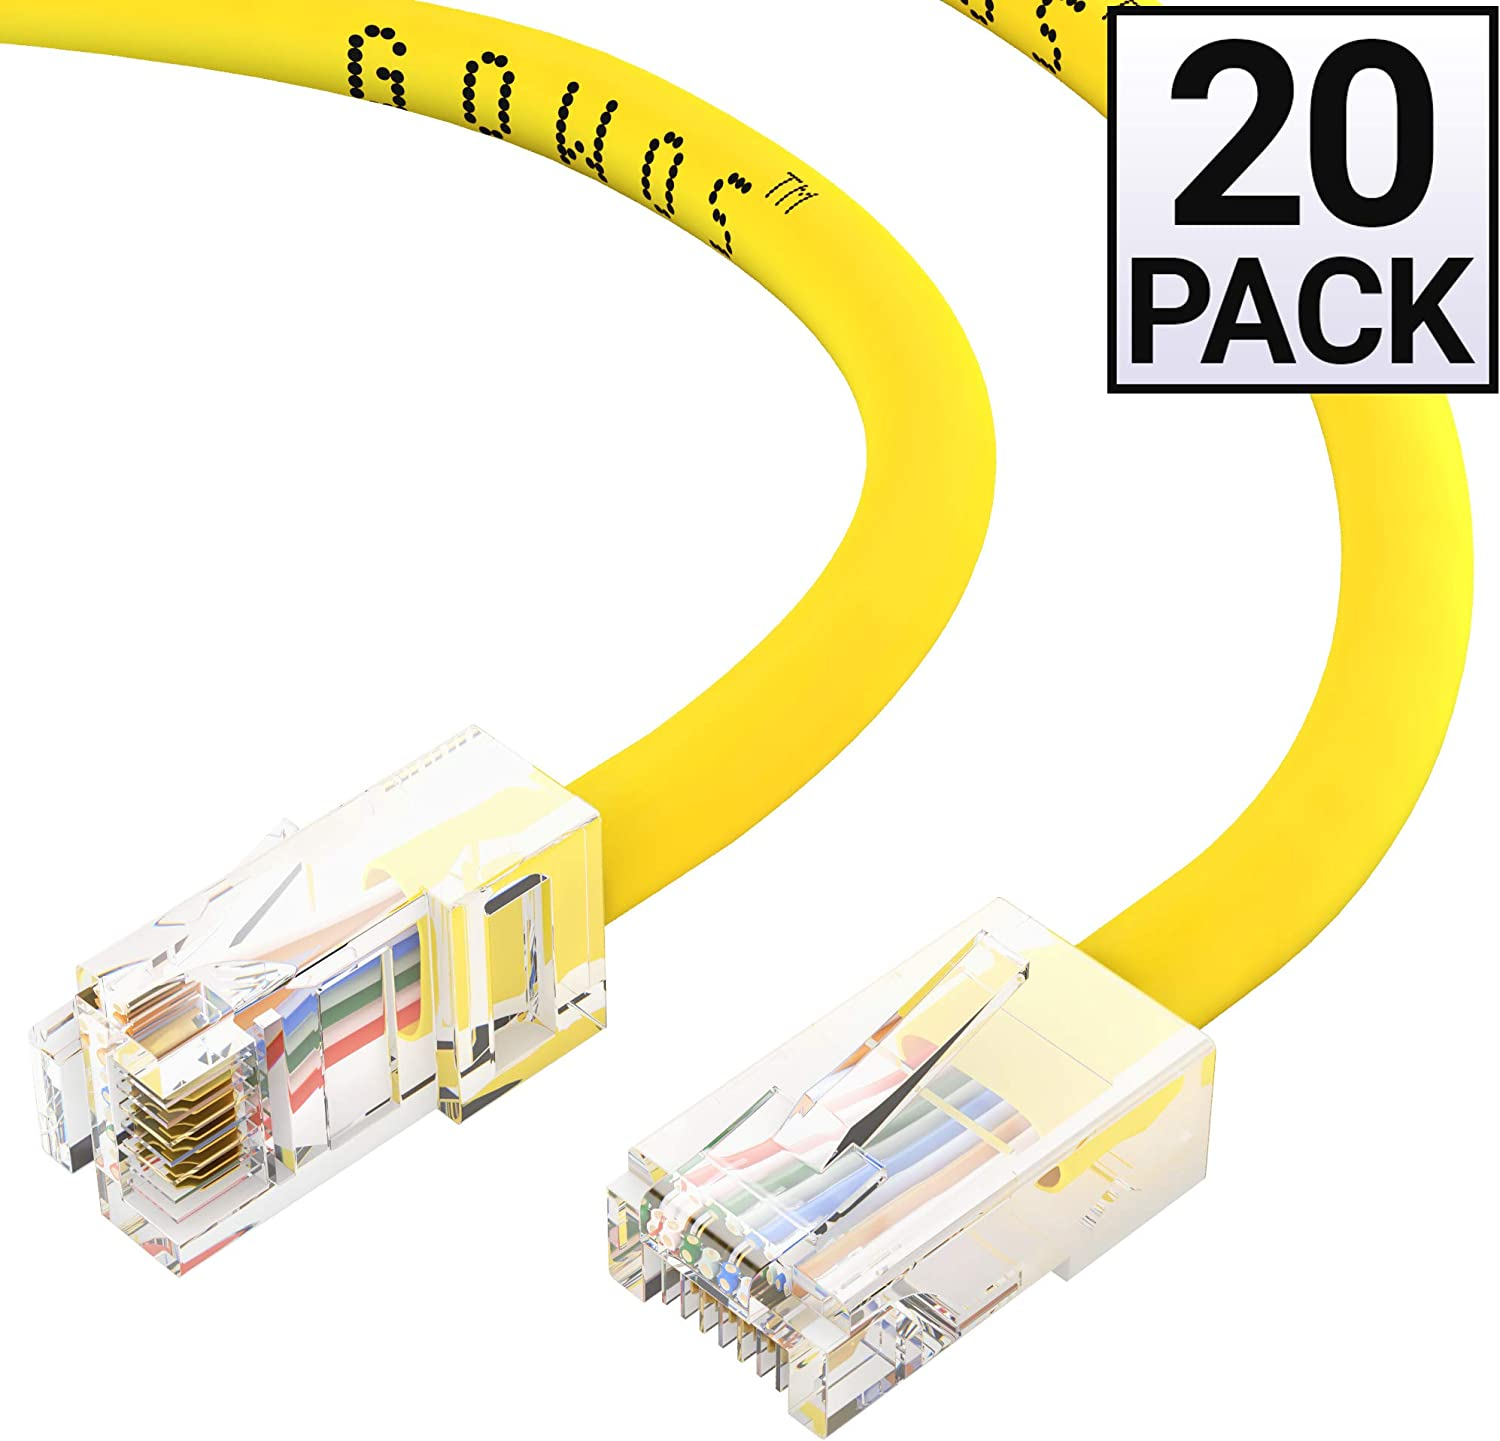 3 Feet - Orange Cat5e Ethernet Cable Computer Network Cable with Bootless Connector RJ45 10Gbps High Speed LAN Internet Patch Cord UTP GOWOS 20-Pack Available in 28 Lengths and 10 Colors